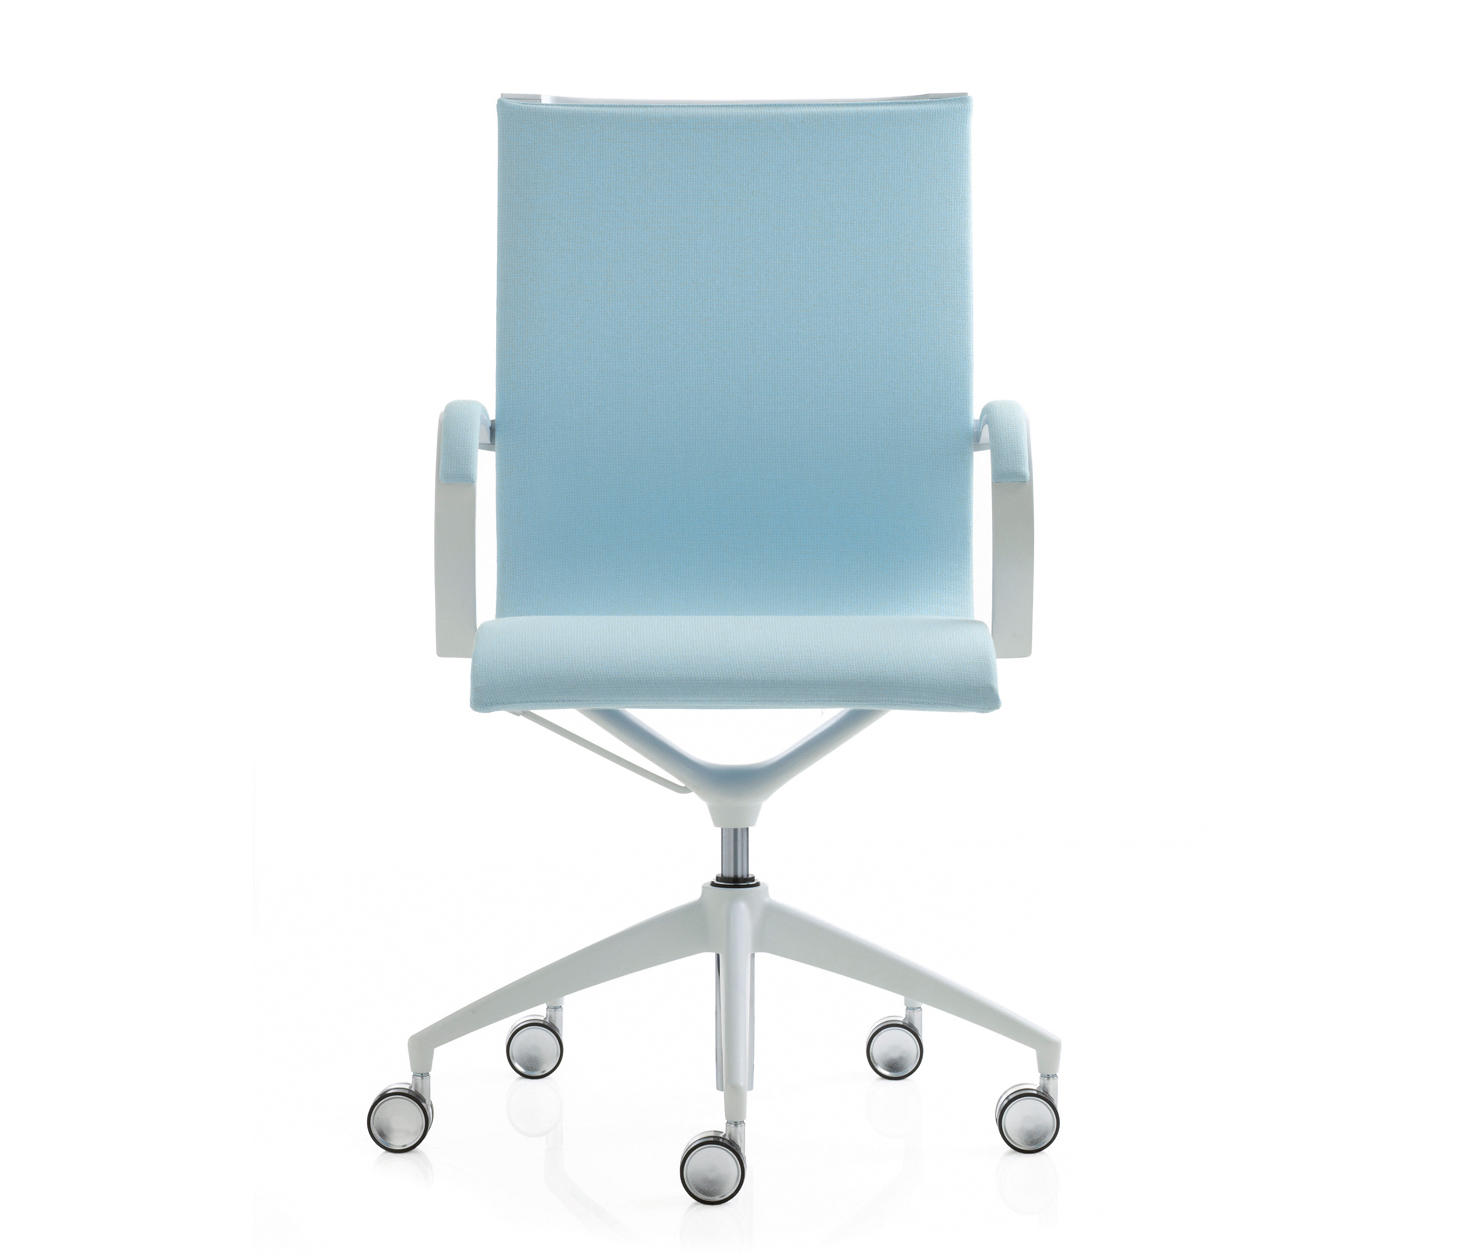 Blue Office Chair Em 202 Light Chaises De Travail De Emmegi Architonic